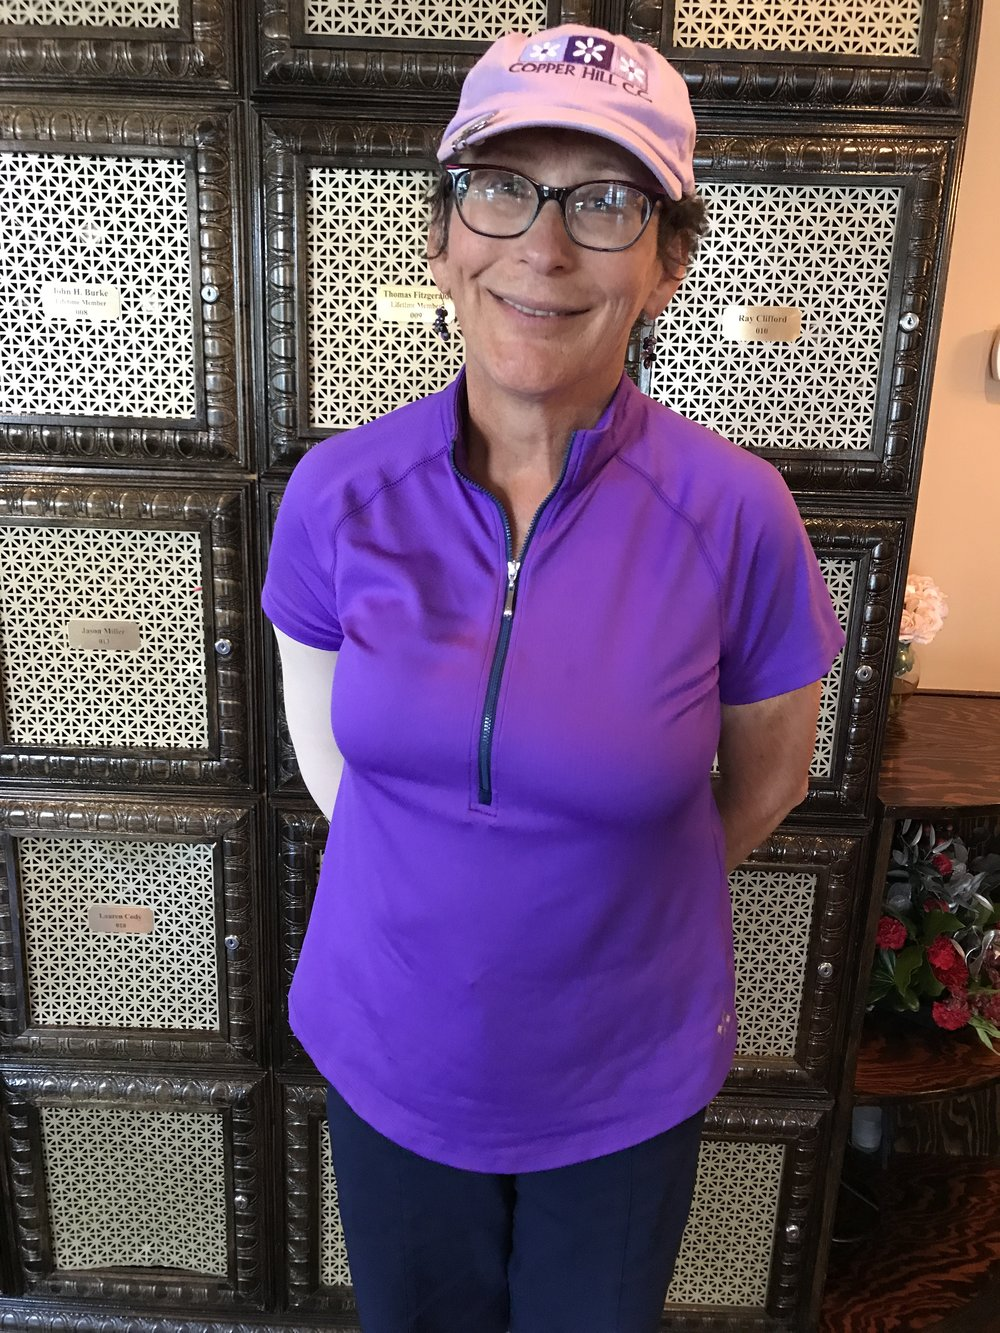 Congratulations to Anne Schafer (Copper Hill) for her Hole in One in the 2017 WTDGA Seniors at Hopewell Valley